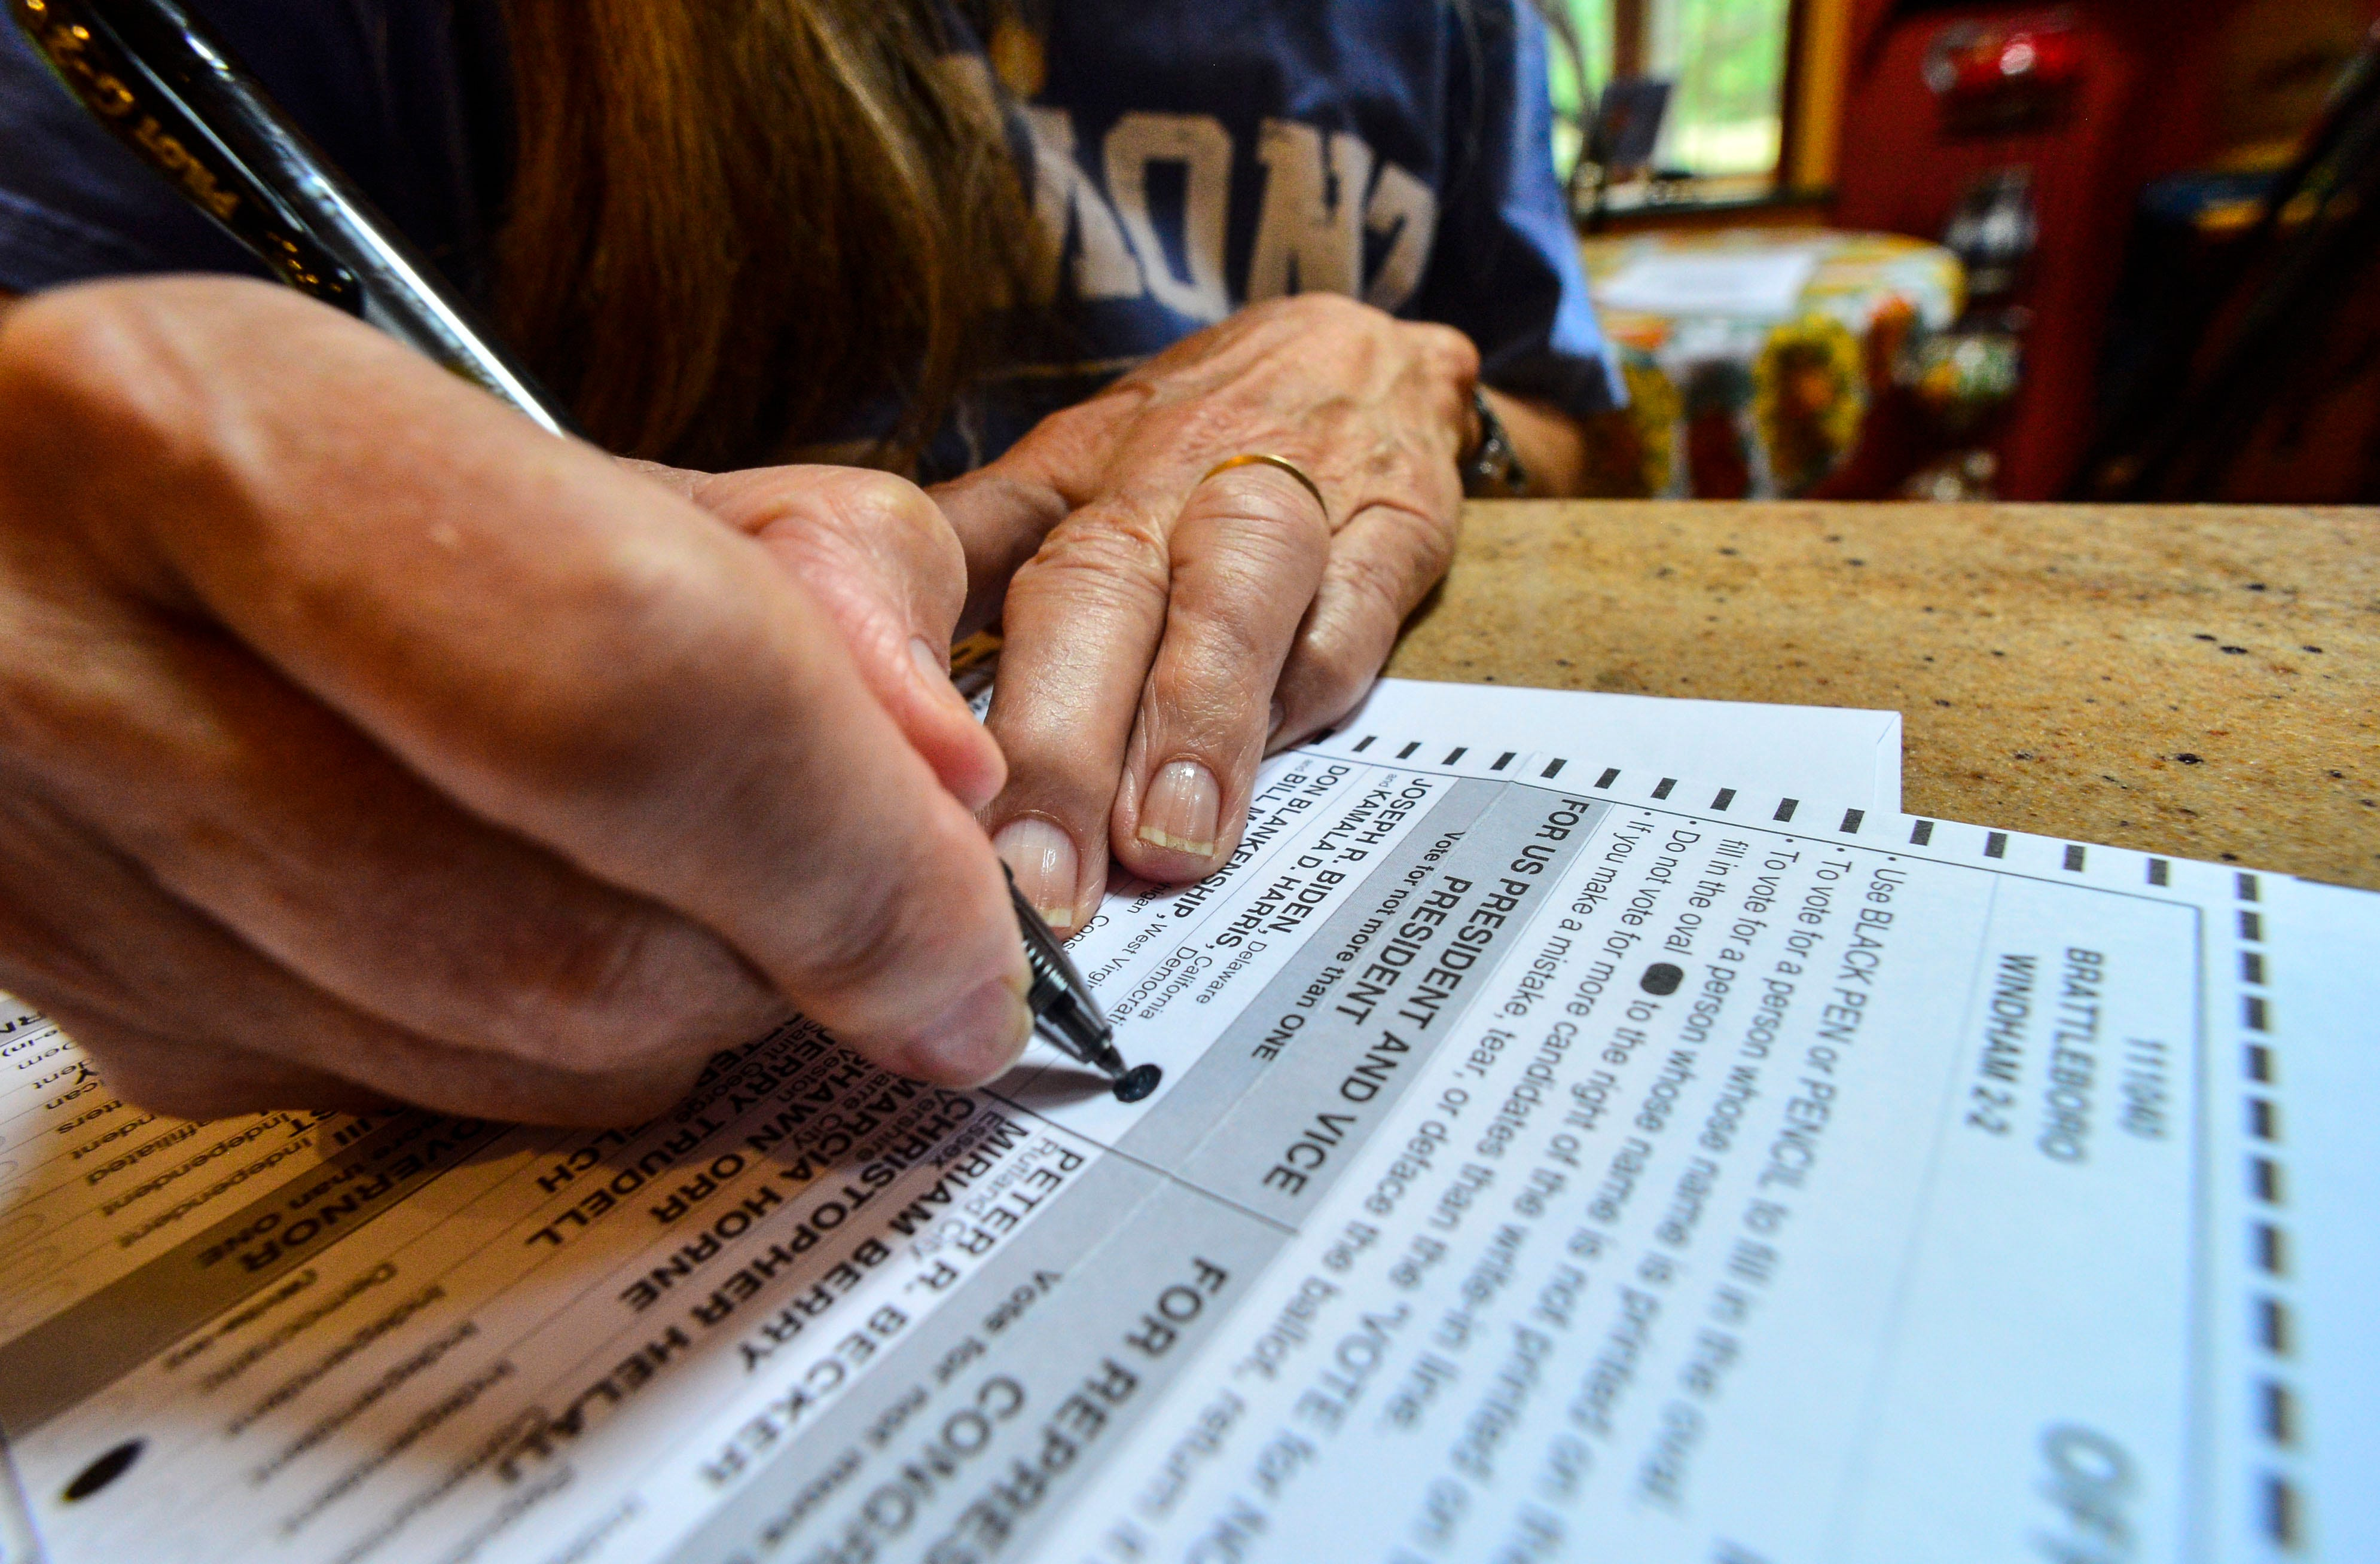 Susan Avery, of Brattleboro, Vt., casts her vote for Democrat presidential candidate, Joe Biden, while filling out her November election ballot that she received in the mail on Monday, Sept. 28, 2020.